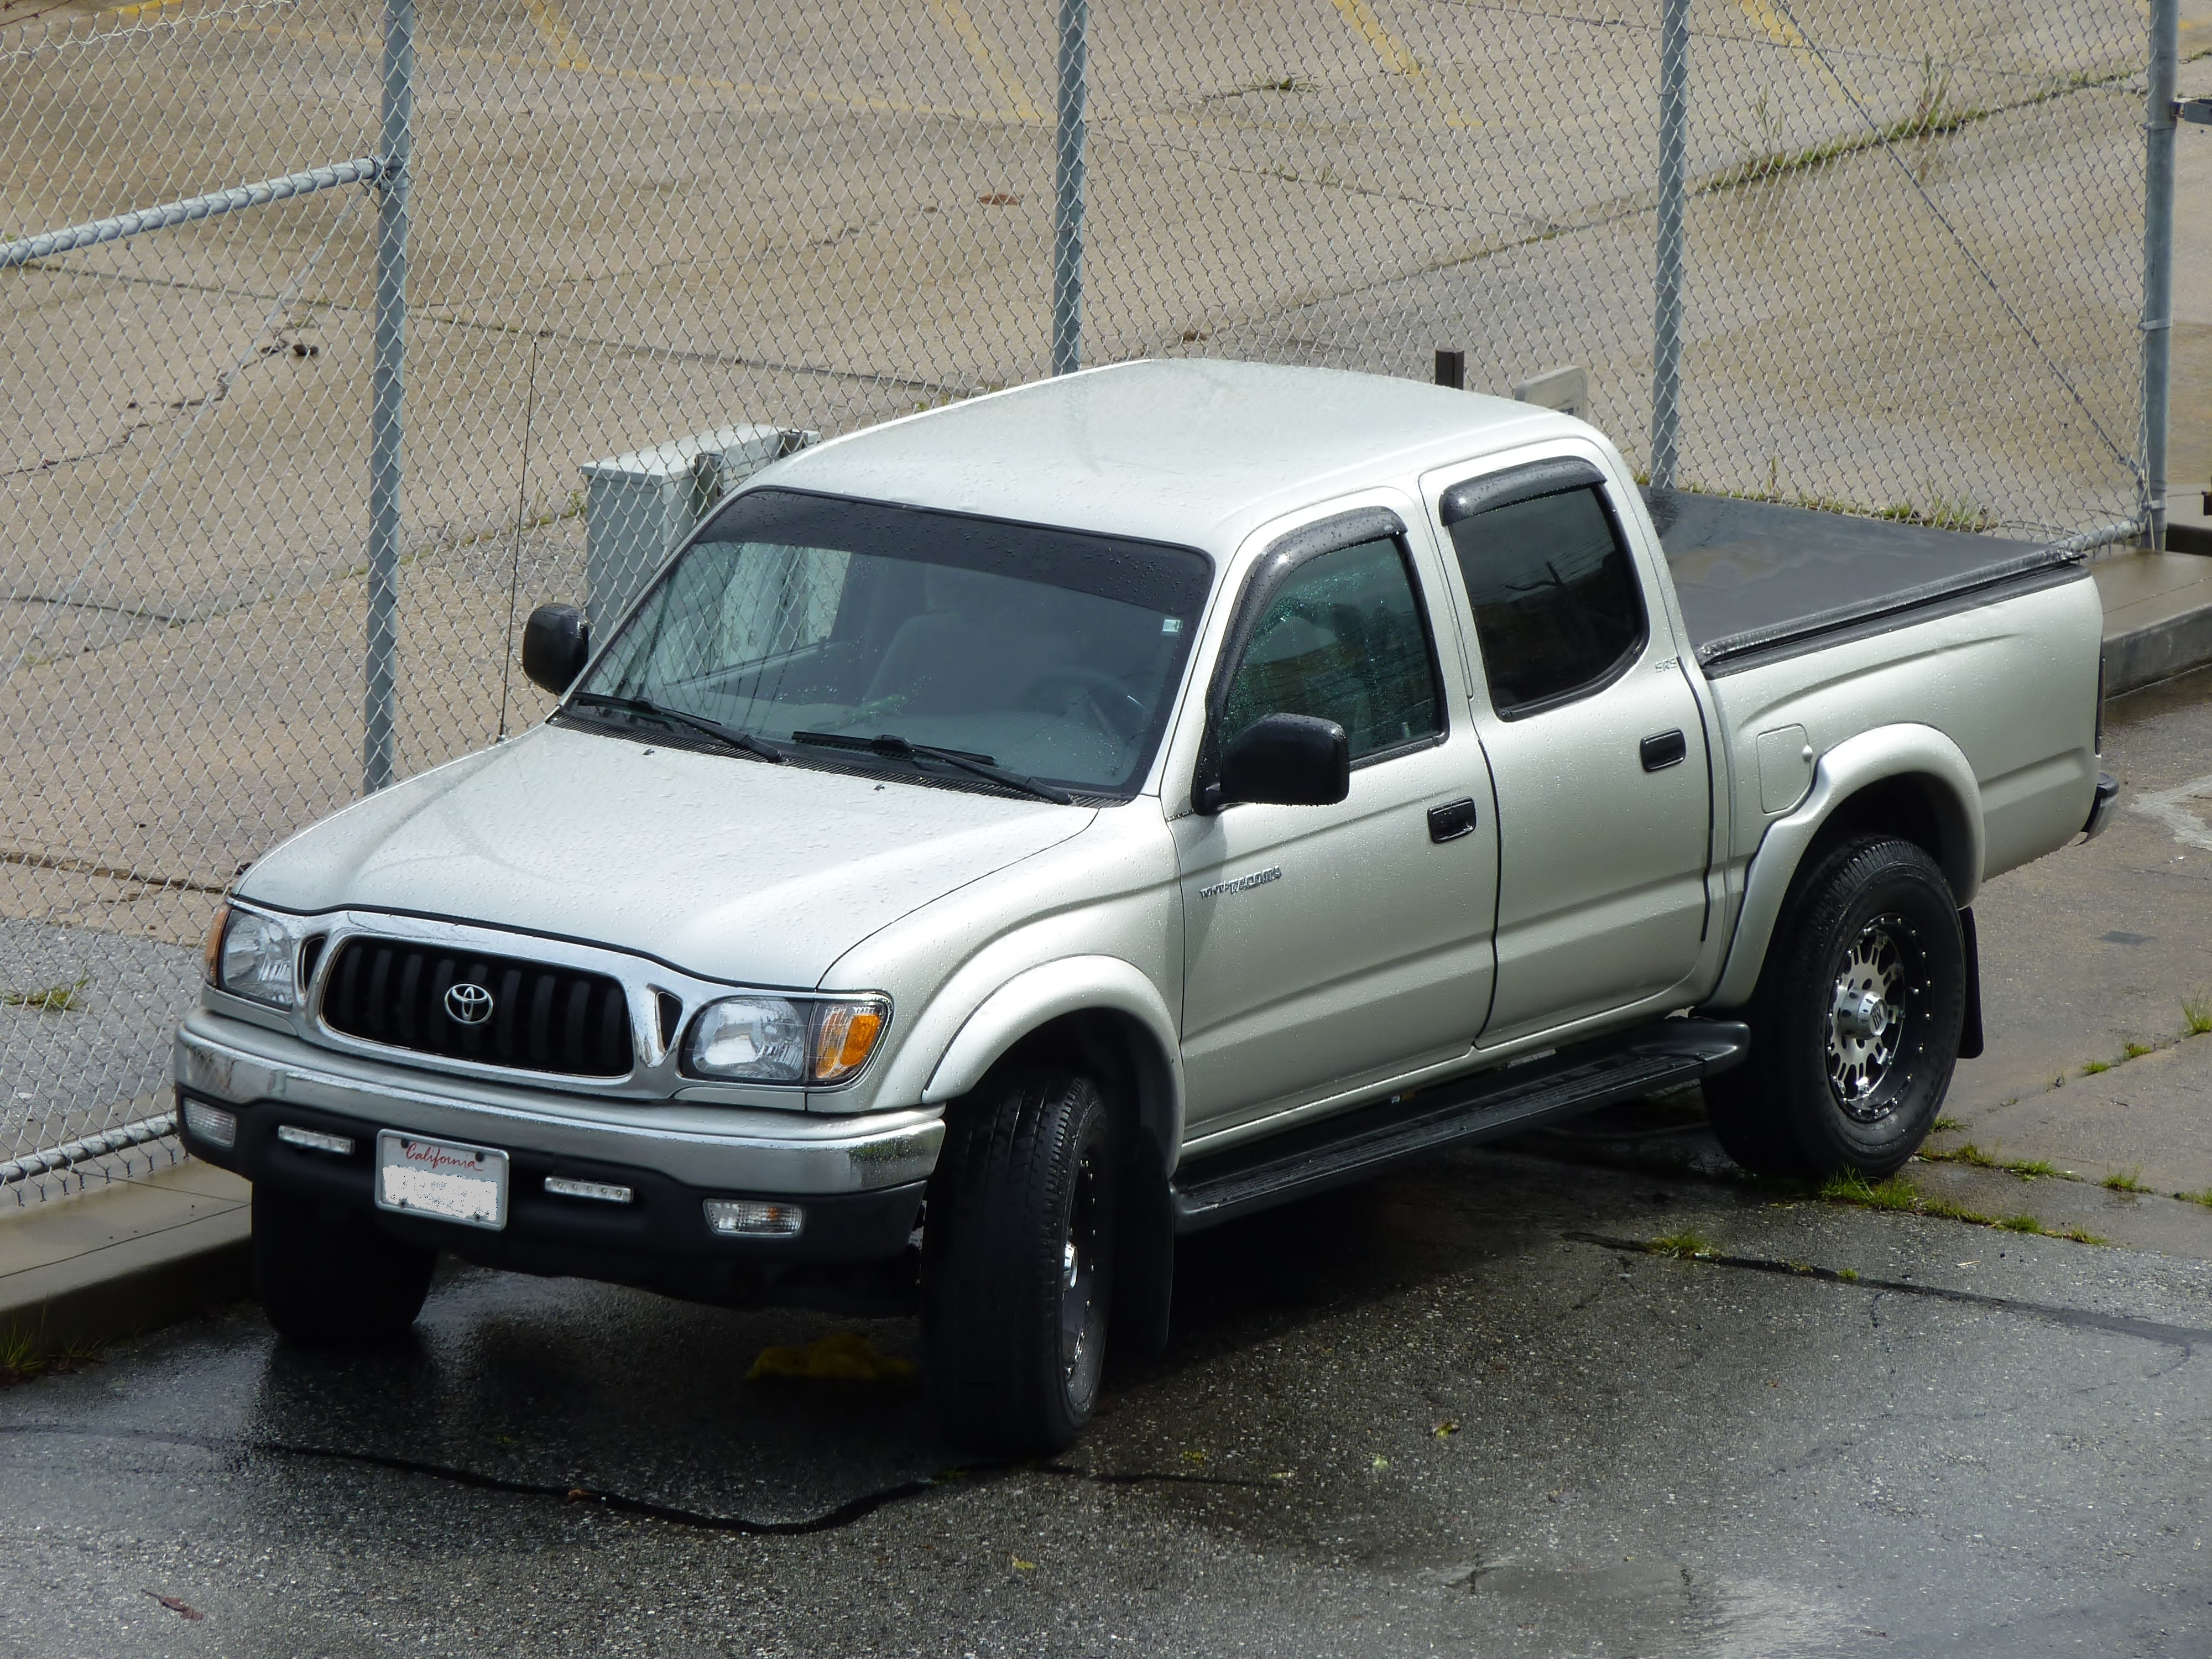 rainerlopez 2001 toyota tacoma double cabprerunner 4d specs photos modification info at cardomain. Black Bedroom Furniture Sets. Home Design Ideas